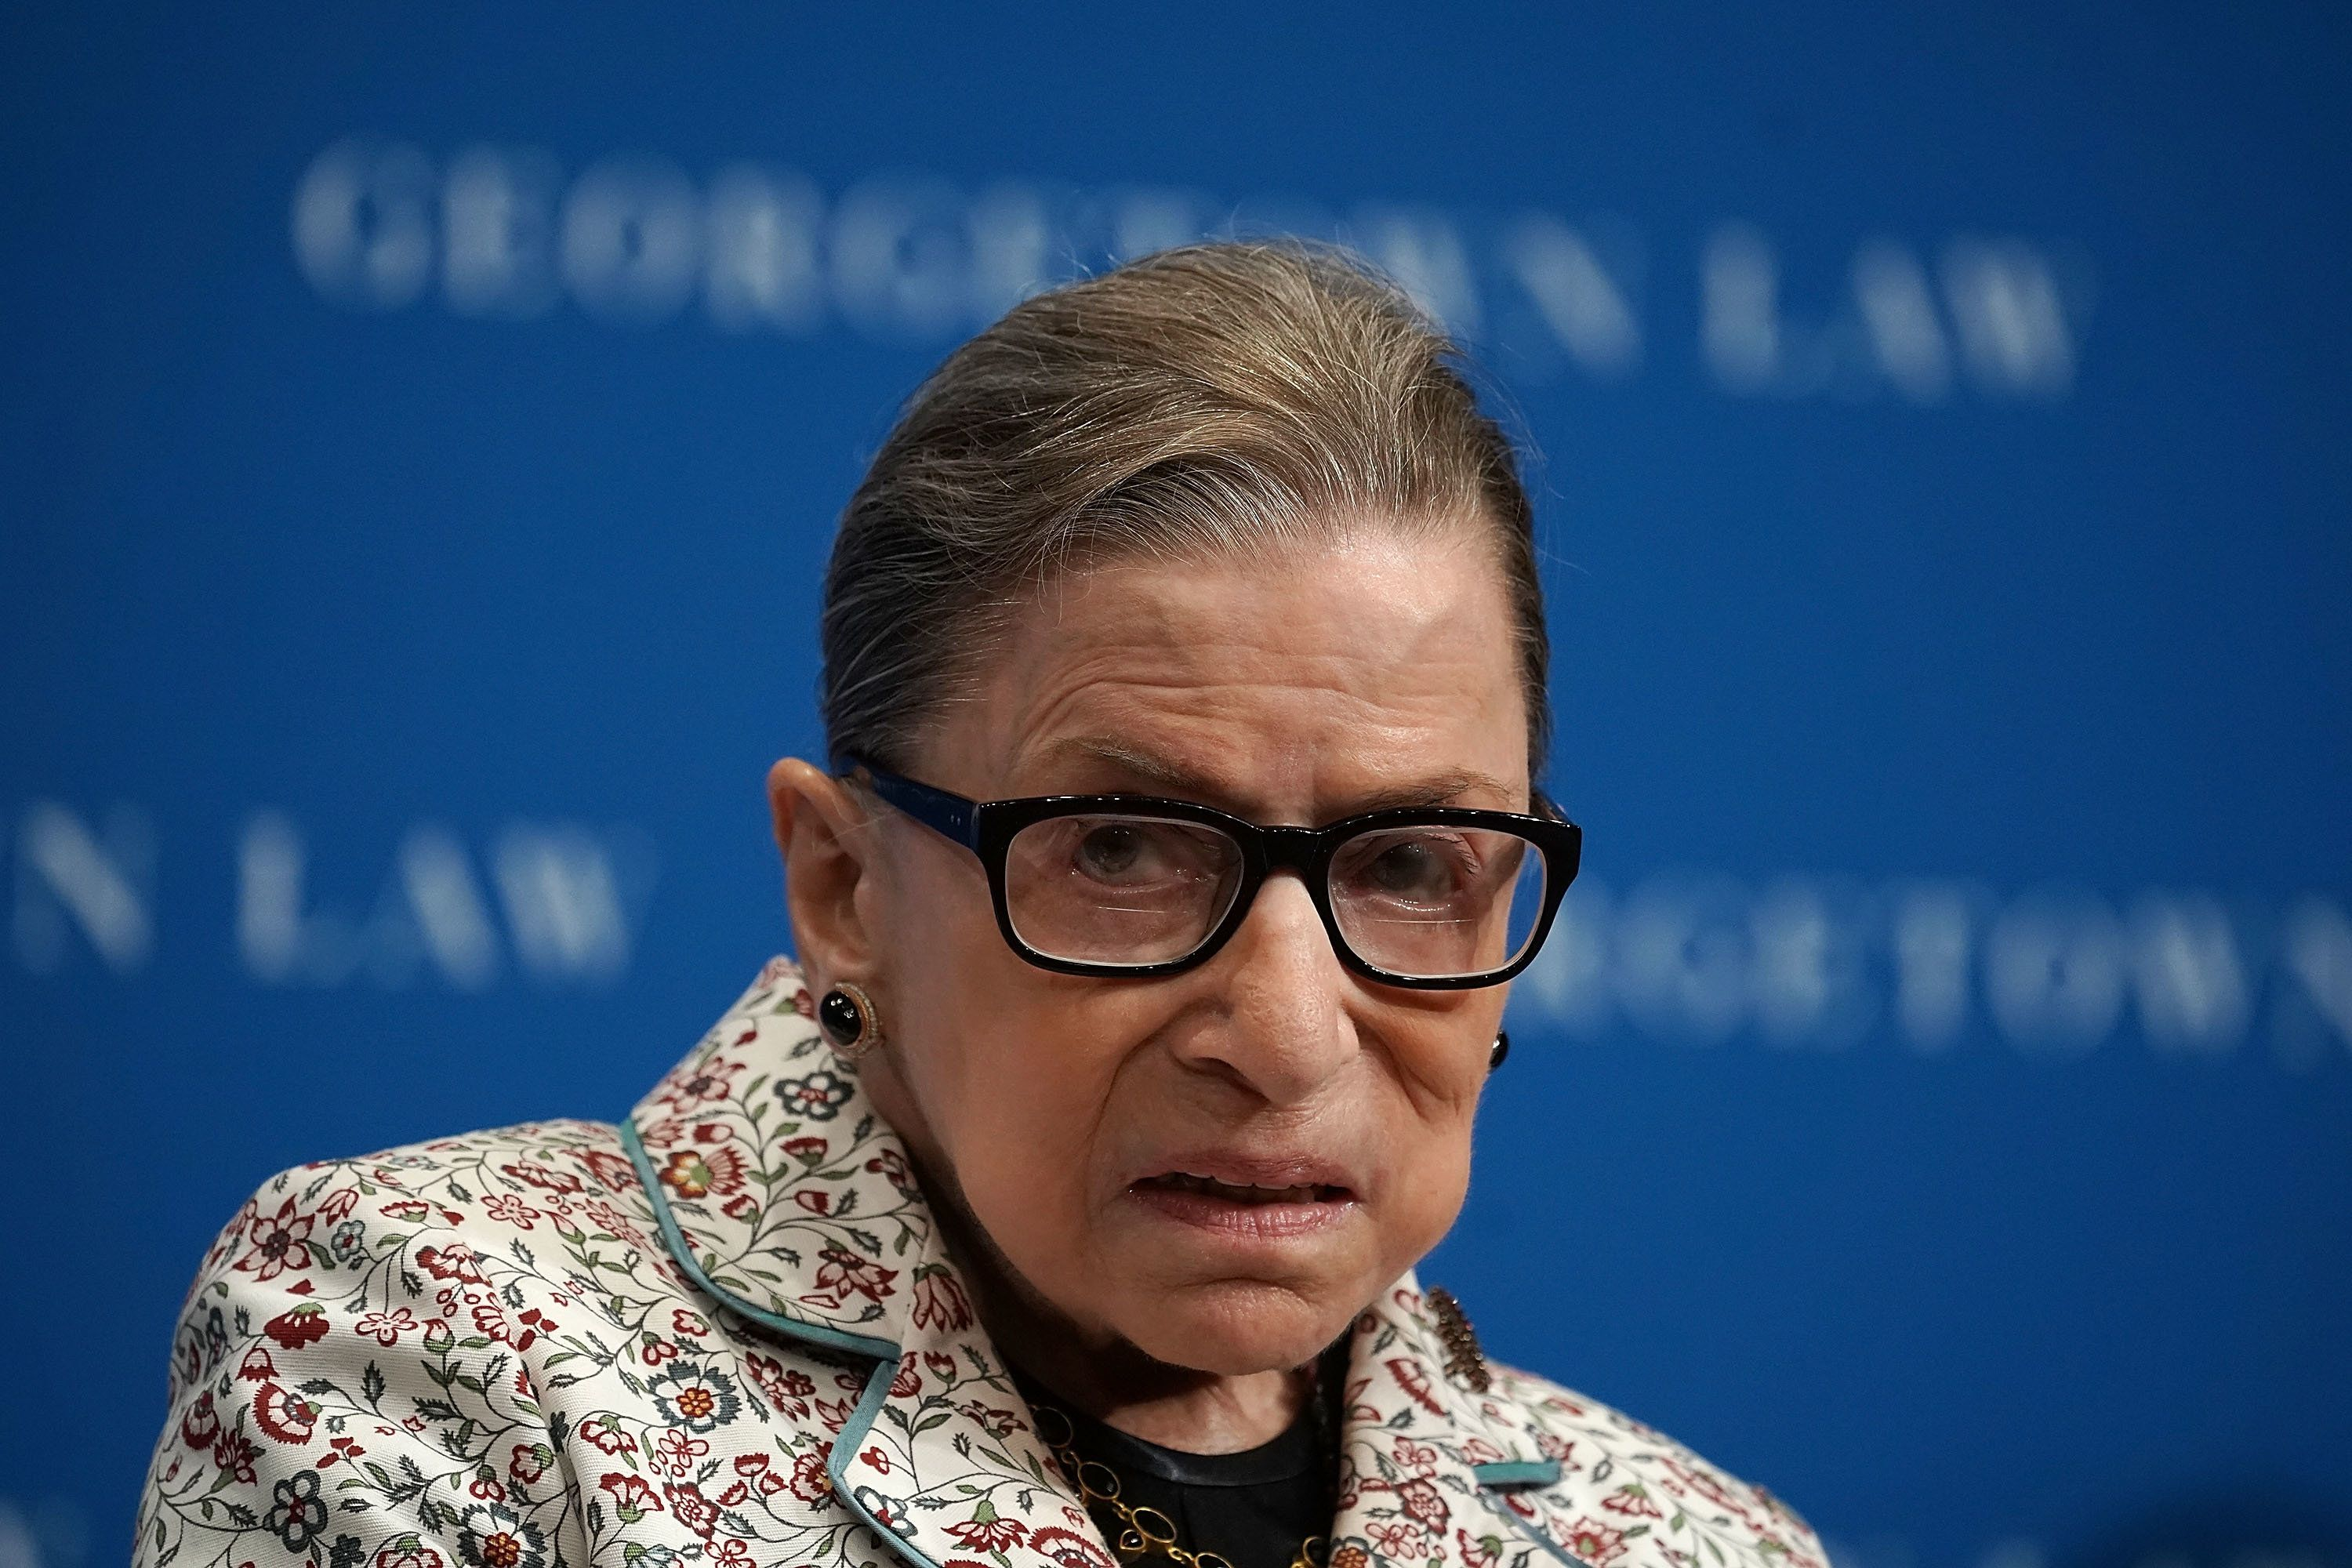 Justice Ruth Bader Ginsburg up and working after surgery